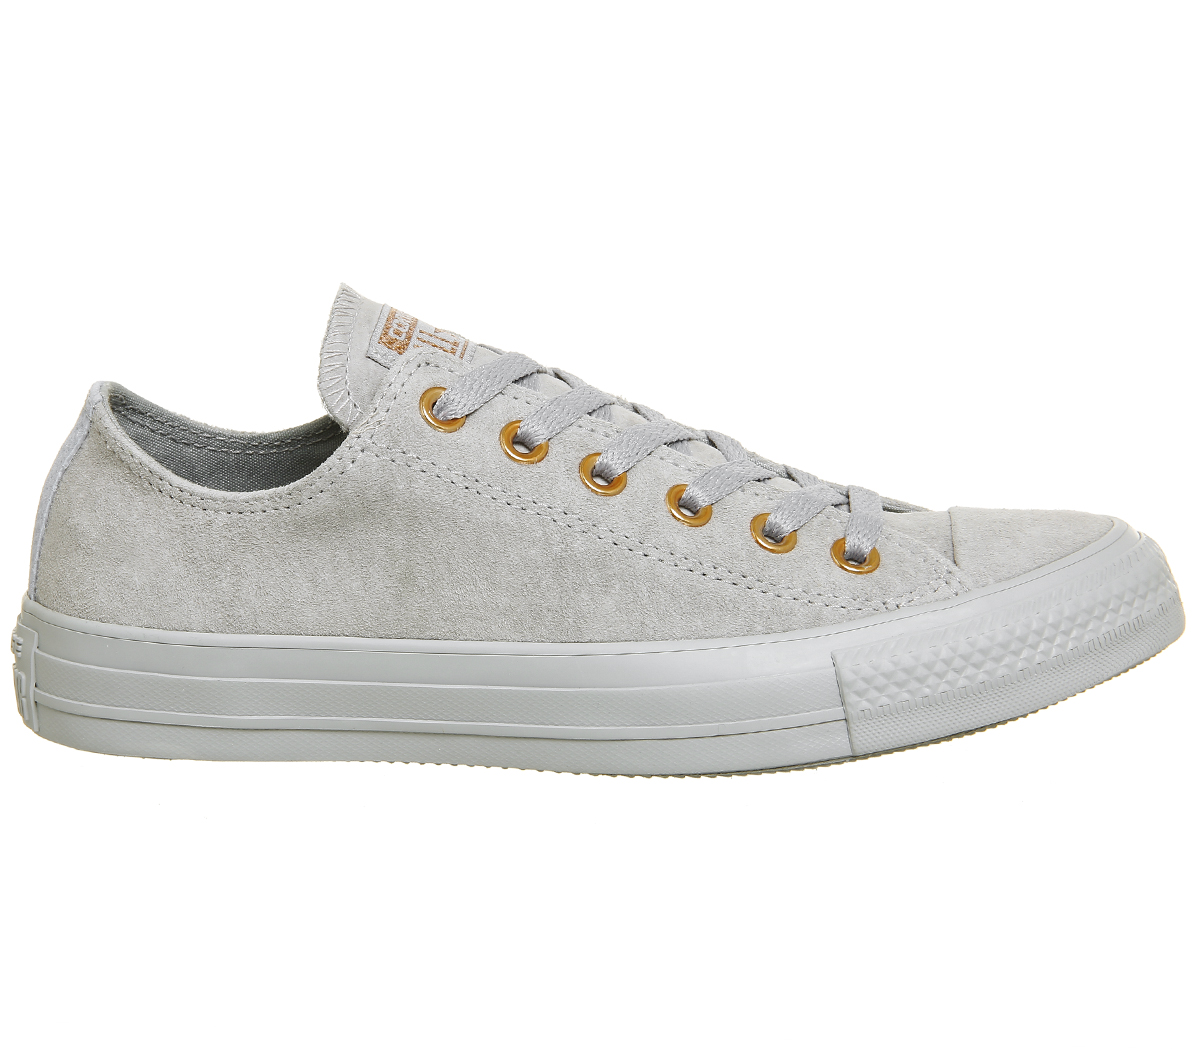 Womens Converse WOLF All Star Low Leather WOLF Converse GREY BLUE CHILL EXCLUSIVE Trainers Sho ca7512